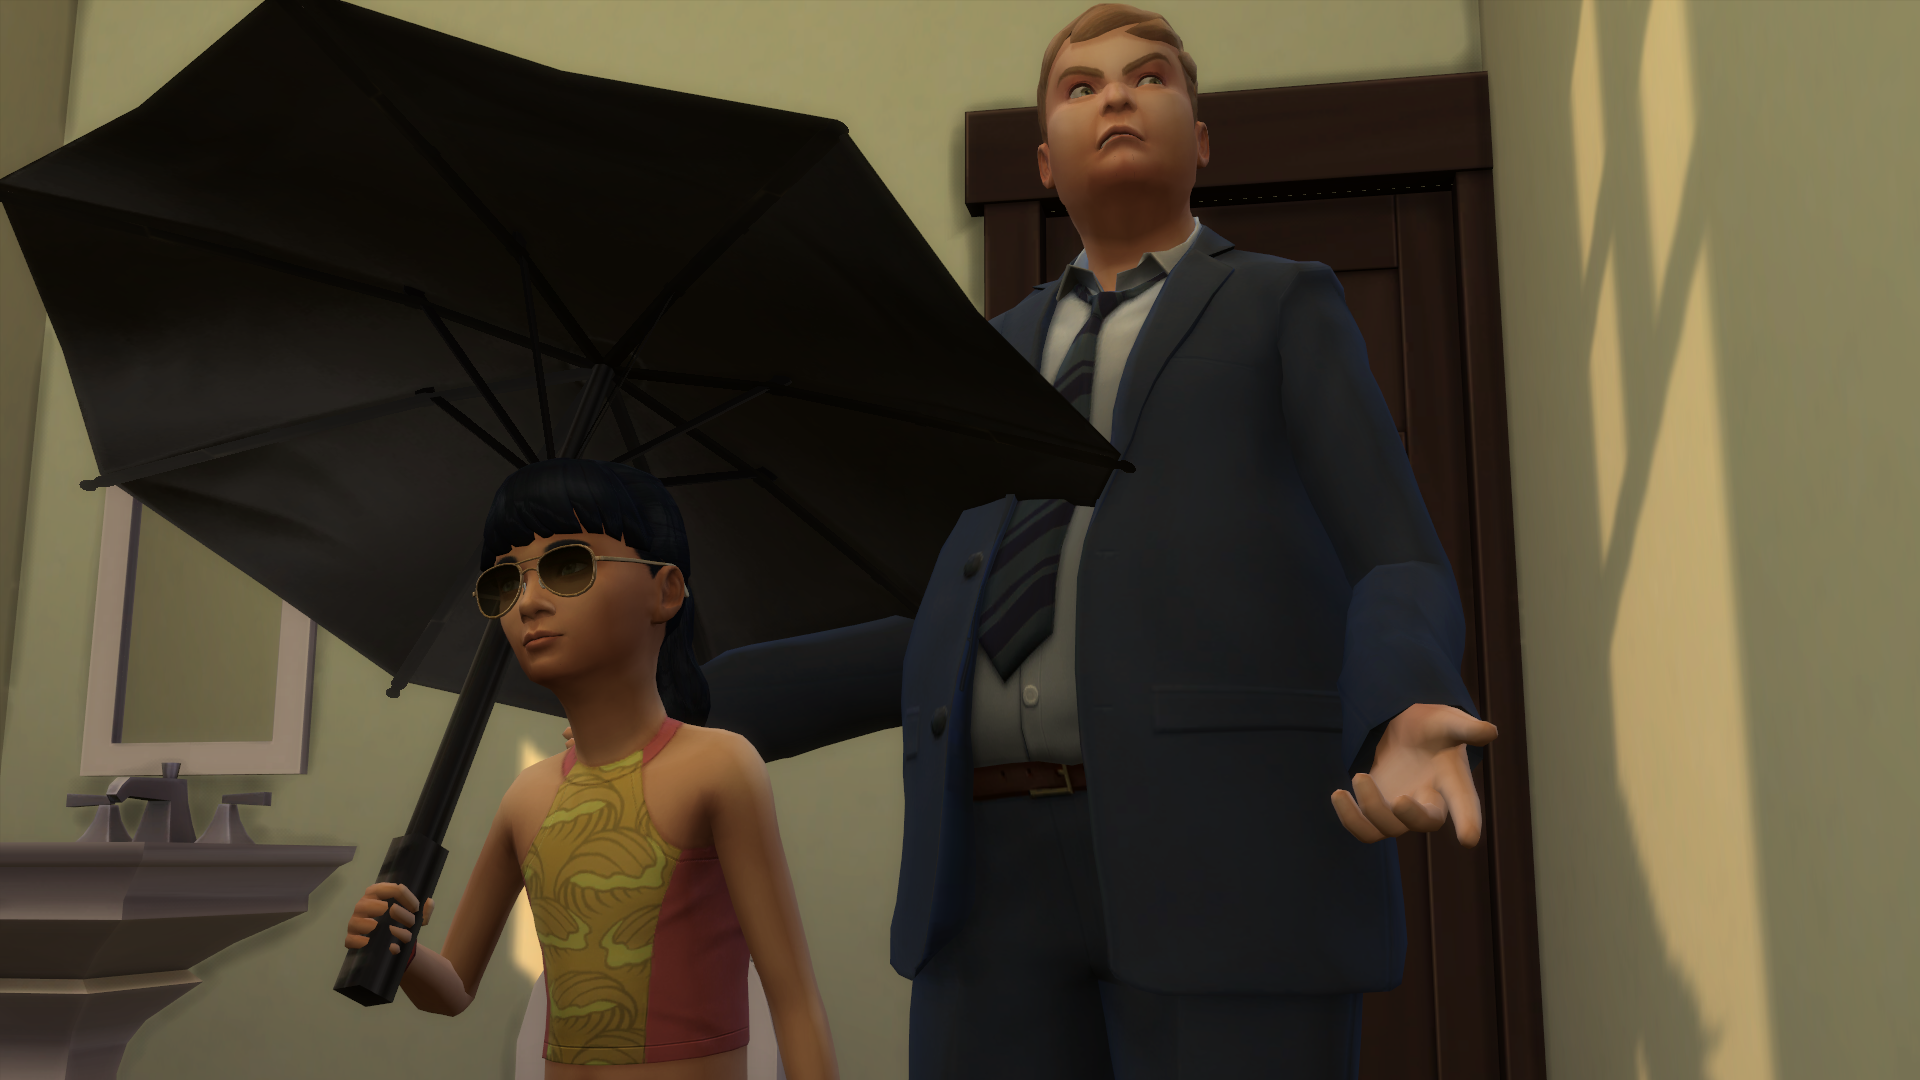 Solved: [FIXED] [S] Sims going indoors with the umbrellas - Answer HQ